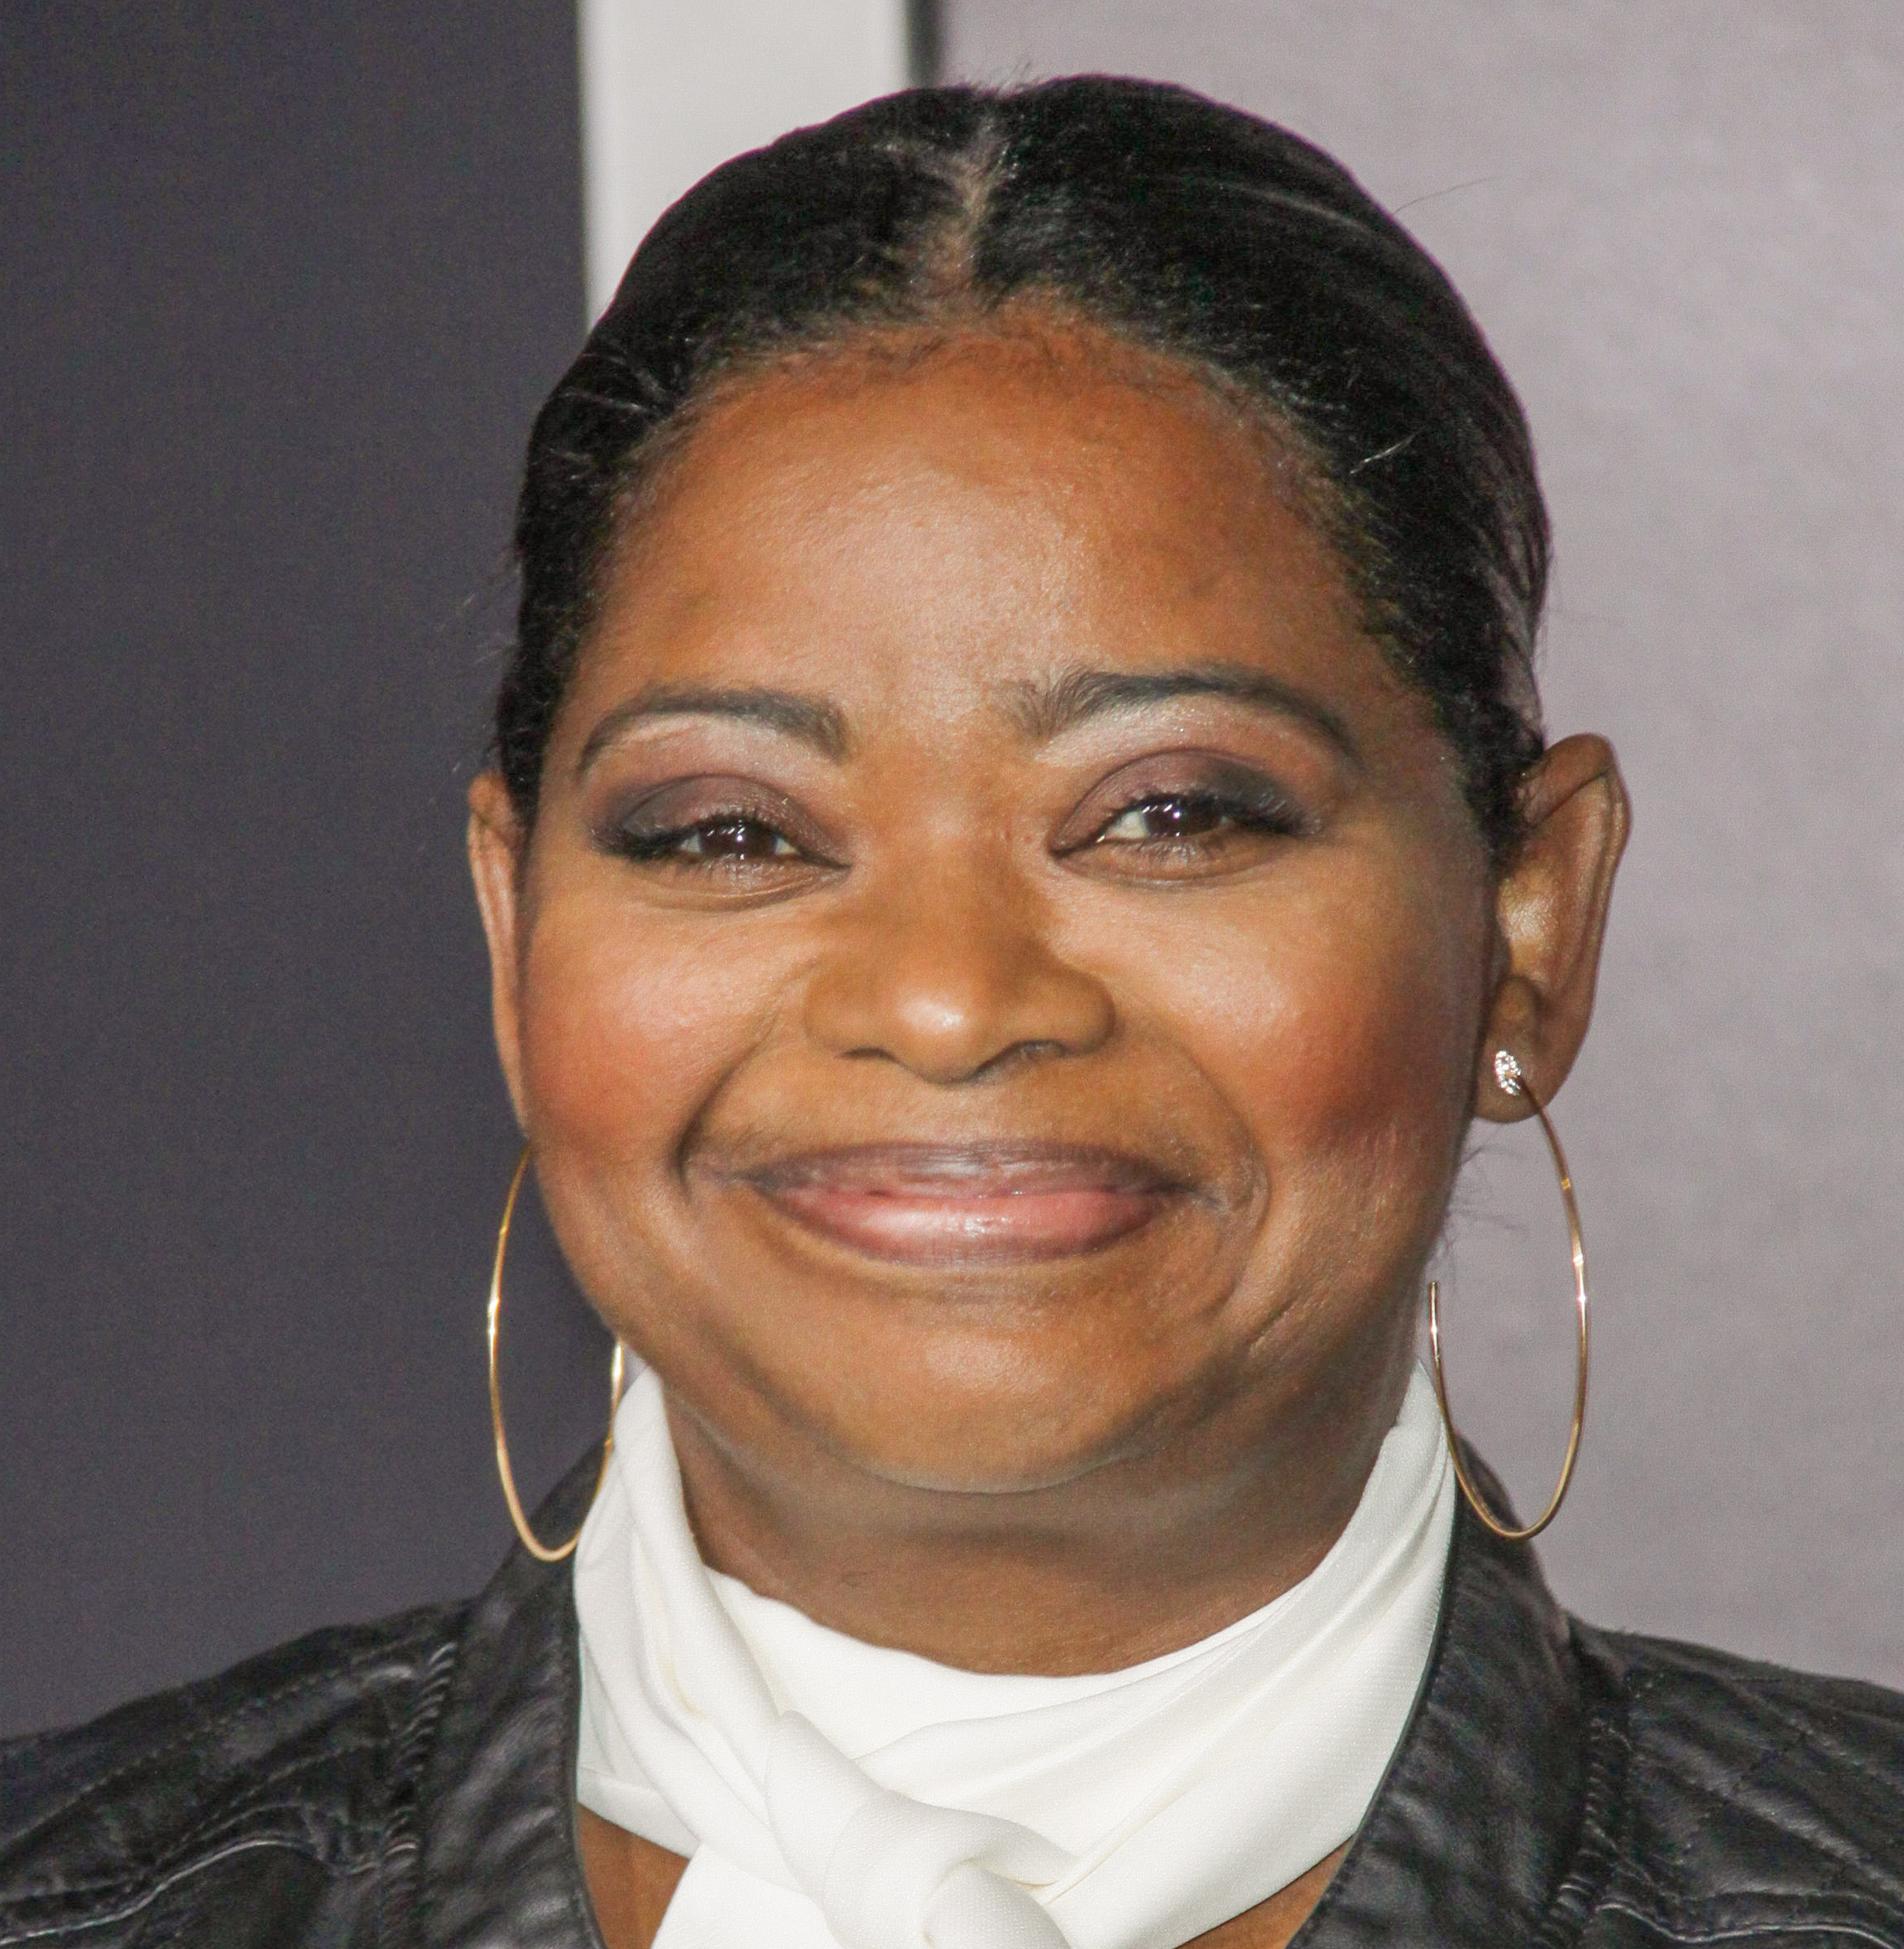 "11/19/2015 - Octavia Spencer - ""Creed"" Los Angeles Premiere - Arrivals - Regency Village Theatre, 961 Broxton Avenue - Los Angeles, CA, USA - Keywords: Vertical, Movie Premiere, Film Premiere, Film Industry, Red Carpet Event, Arrival, Portrait, Photography, Arts Culture and Entertainment, Celebrities, Celebrity, People, Person, Topix, Bestof, Warner Bros. Pictures, Mann Village Theatre, Theater, Westwood, California Orientation: Portrait Face Count: 1 - False - Photo Credit: Izumi Hasegawa / PRPhotos.com - Contact (1-866-551-7827) - Portrait Face Count: 1"